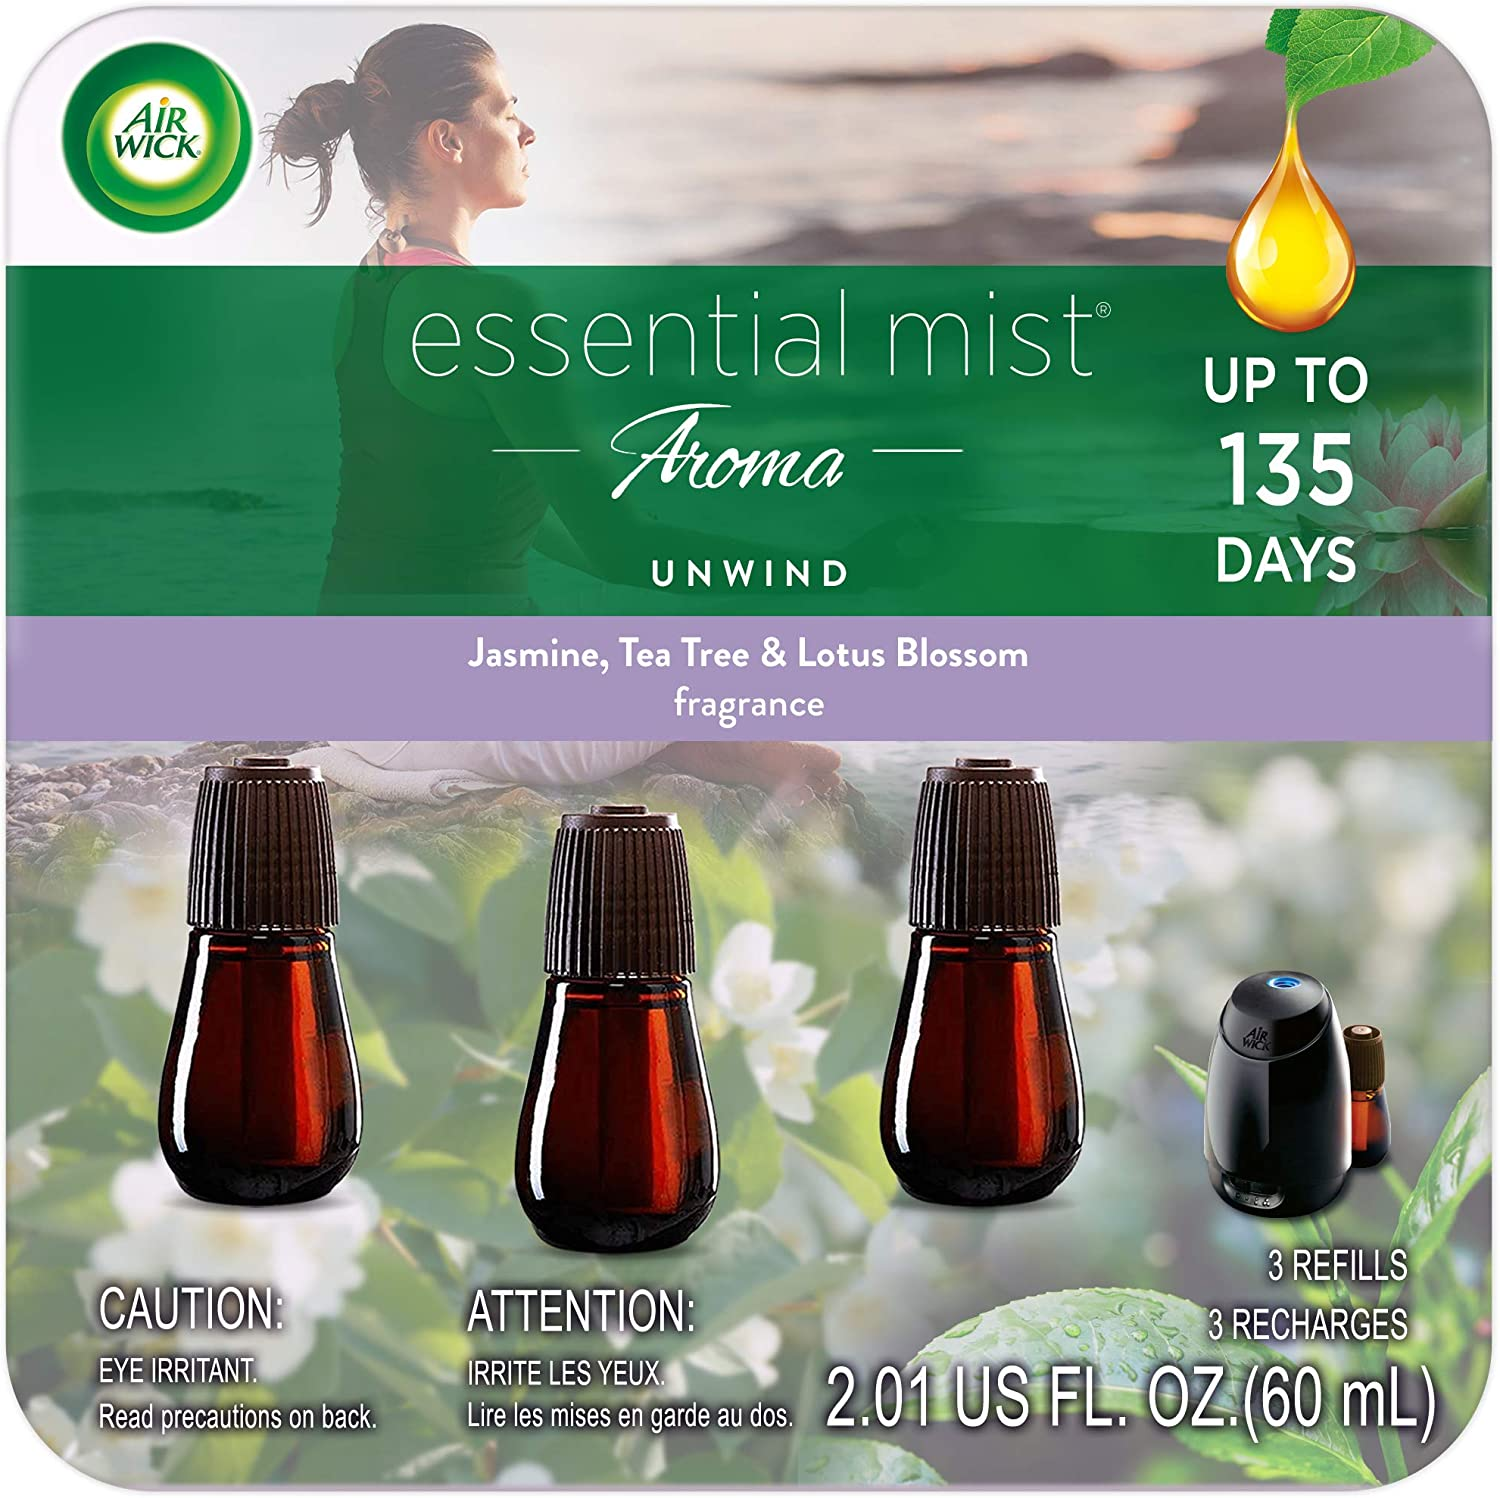 Air Wick Essential Mist Refill Freshener Essential Oils Diffuser Aromatherapy, Unwind, 3 Count